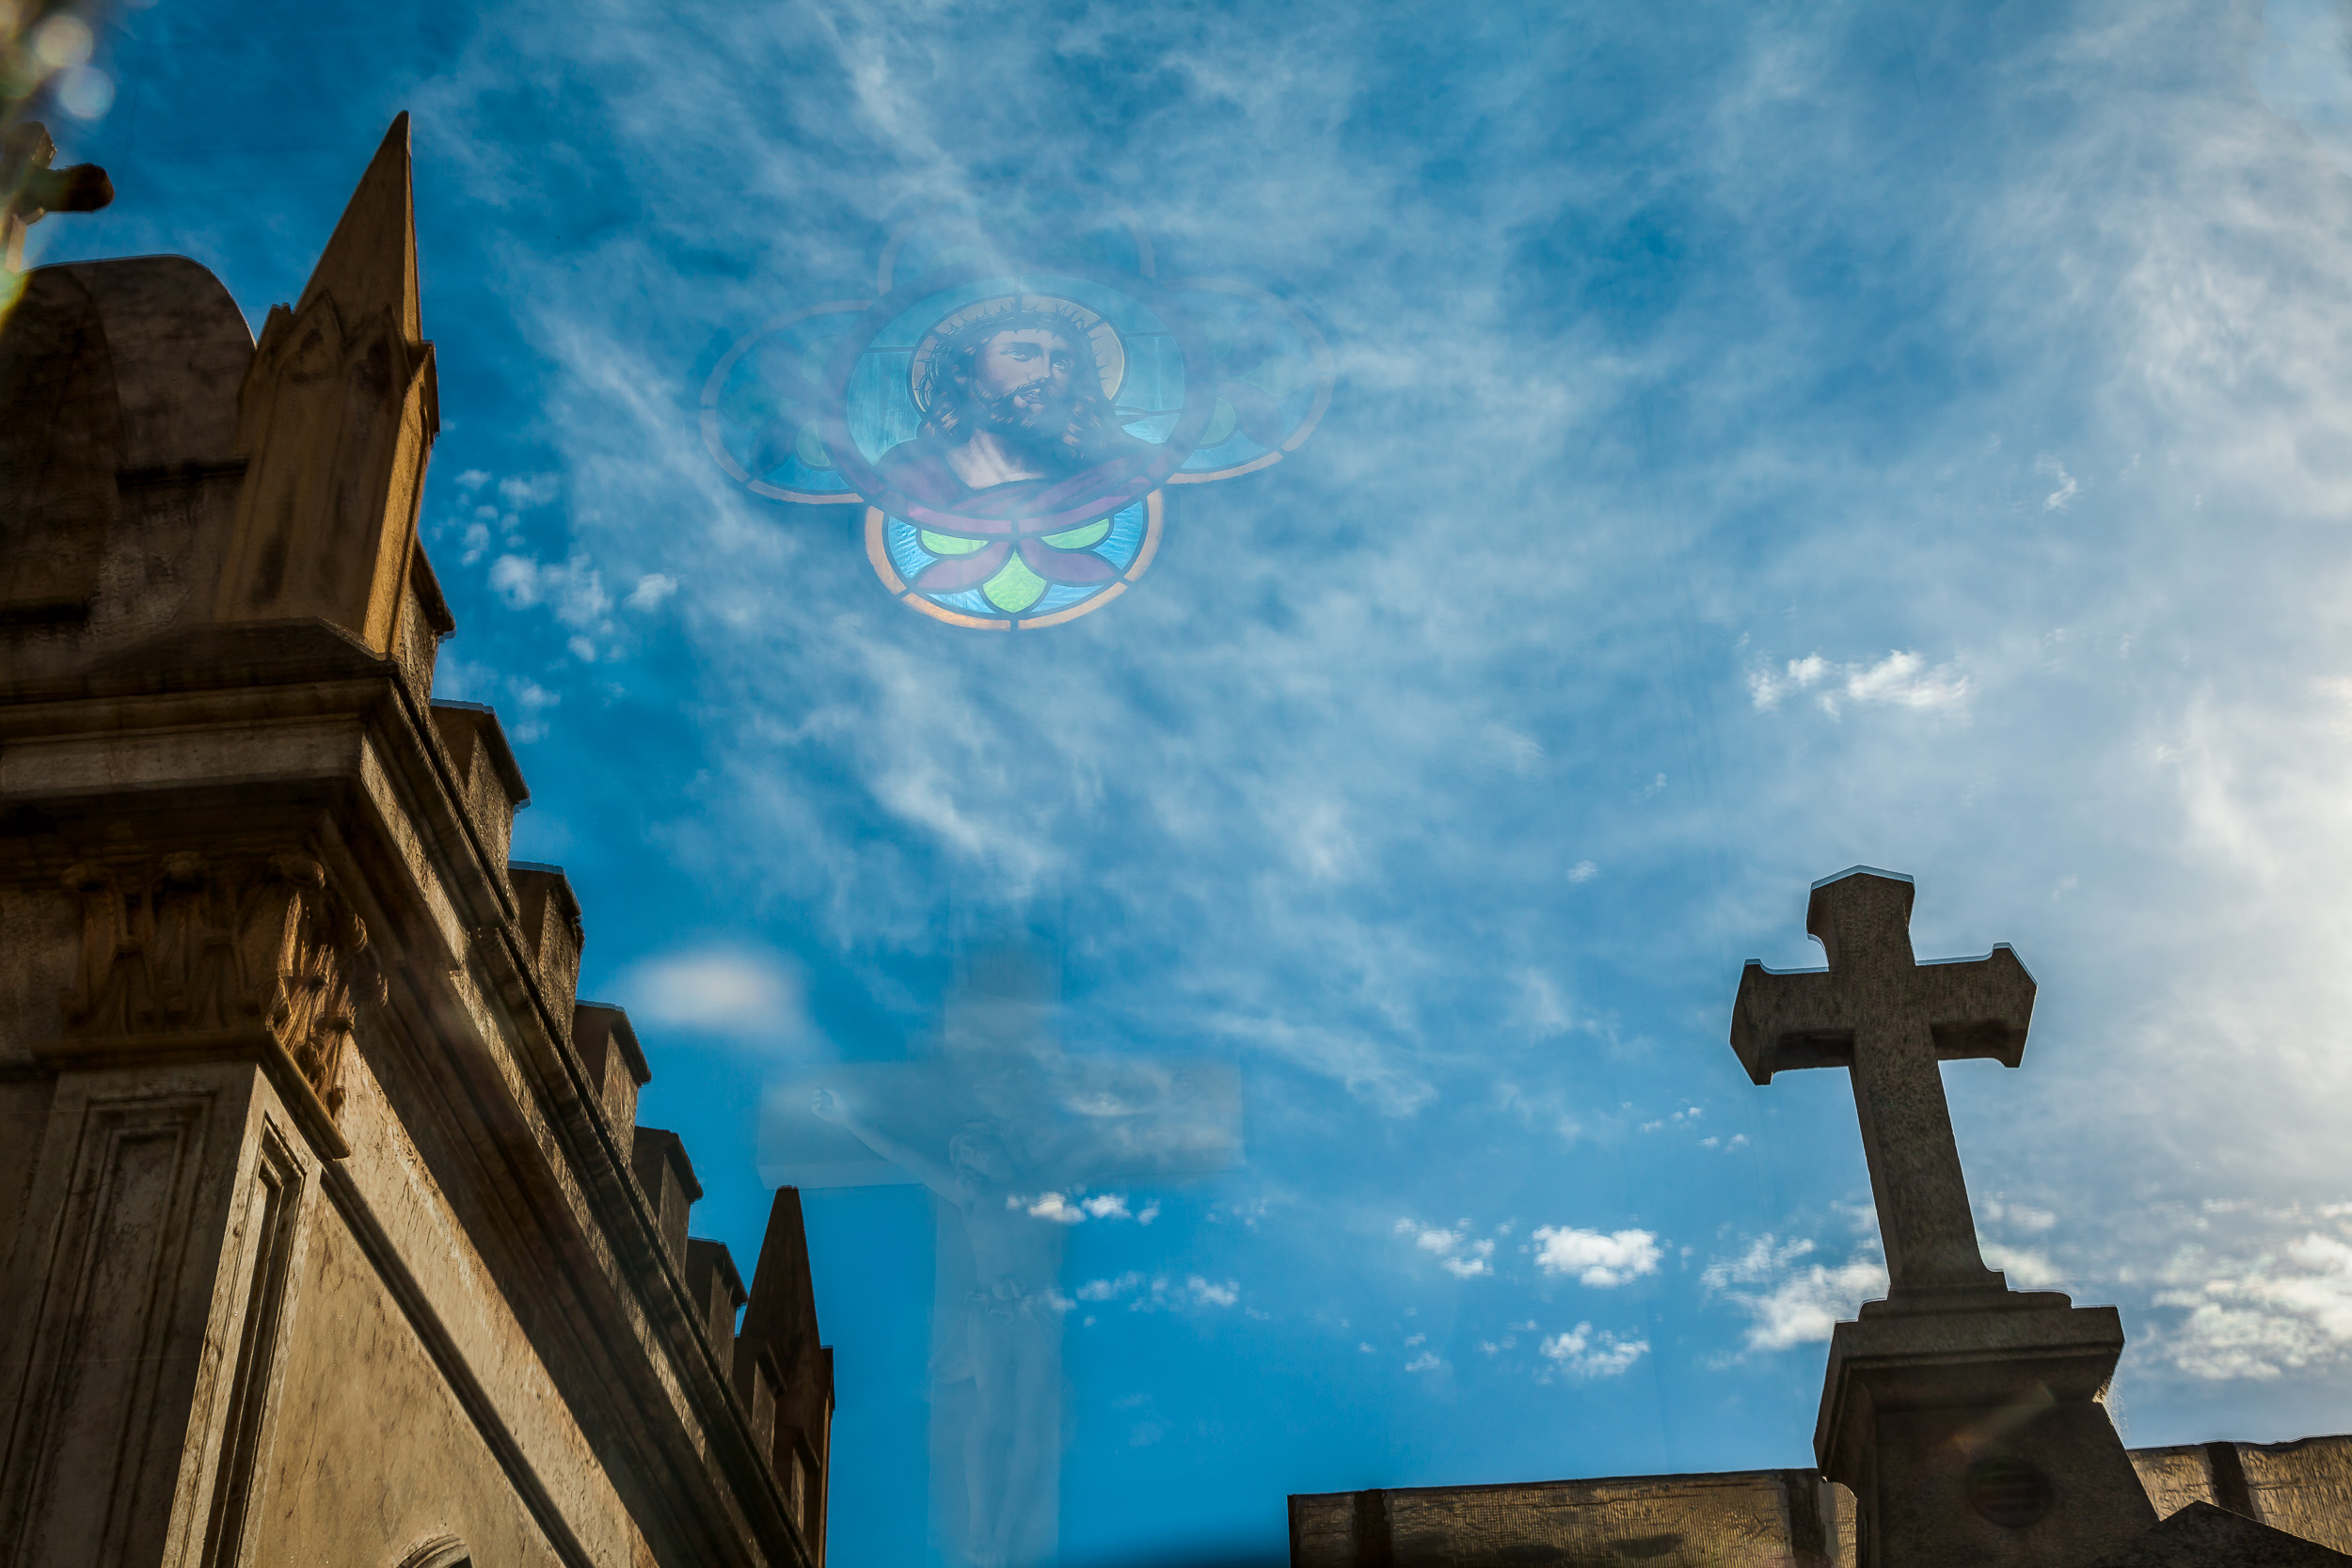 A very    surreal photo    that, via reflection,    displays the face of Jesus in the sky    above the magnificent    La Recoleta Cemetery    in    Buenos Aires, Argentina   .